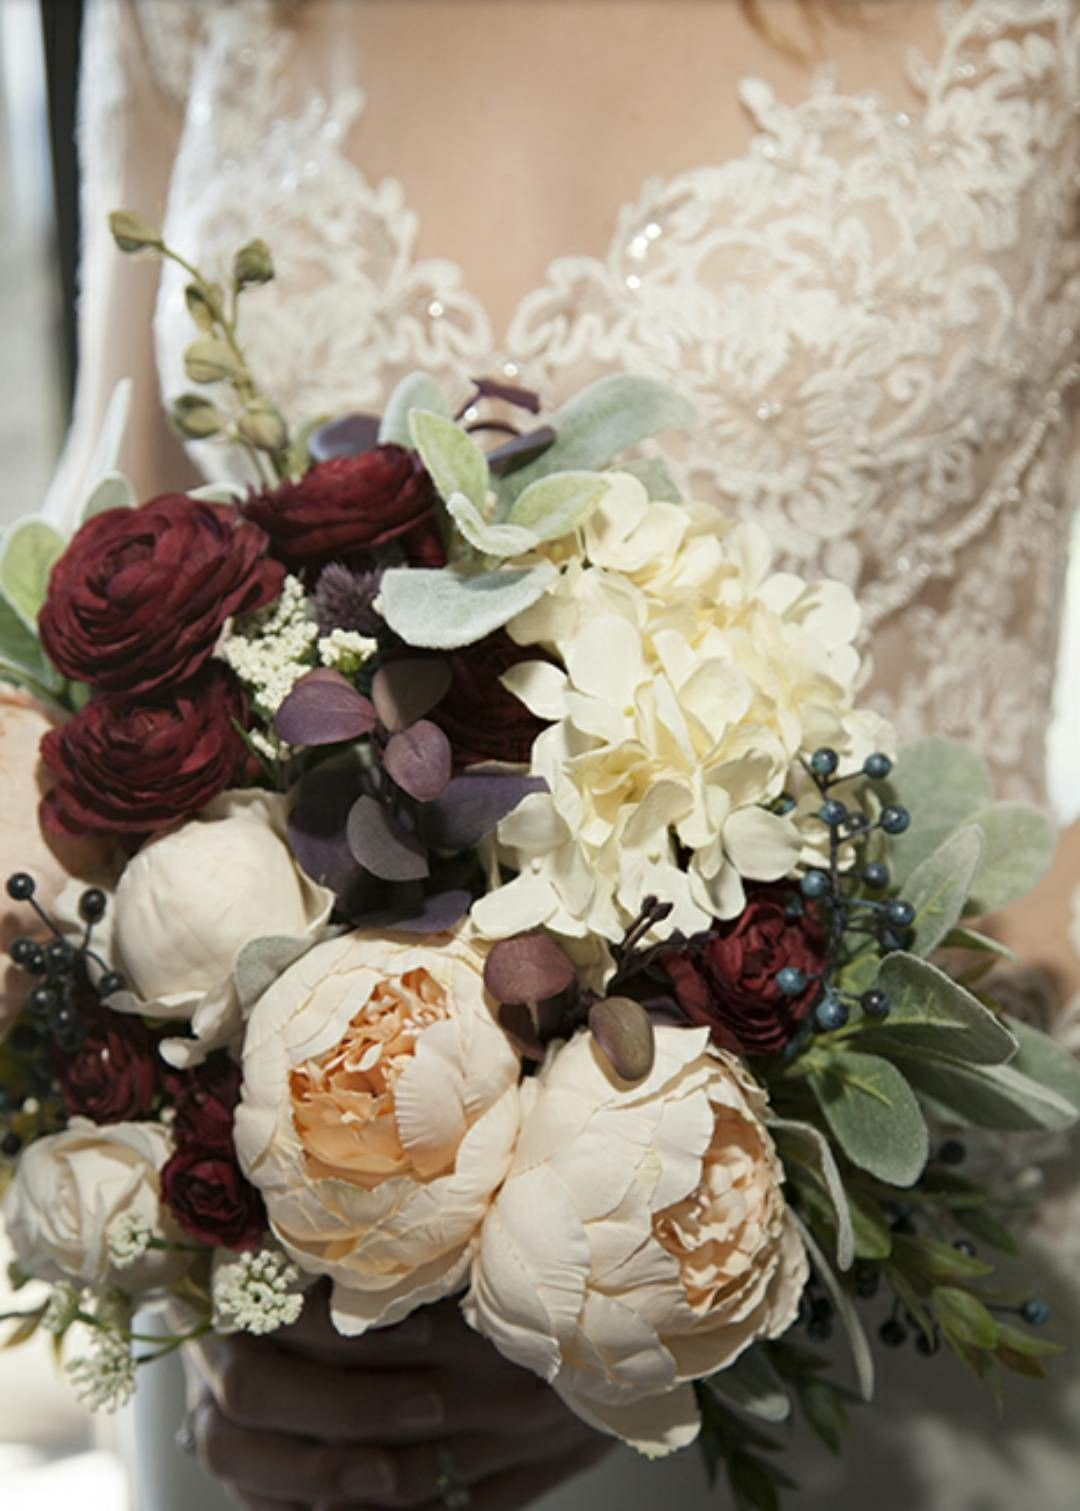 Rustic Chic Blush Pink Bridal Bouquet Perfect Fit For This Elegant